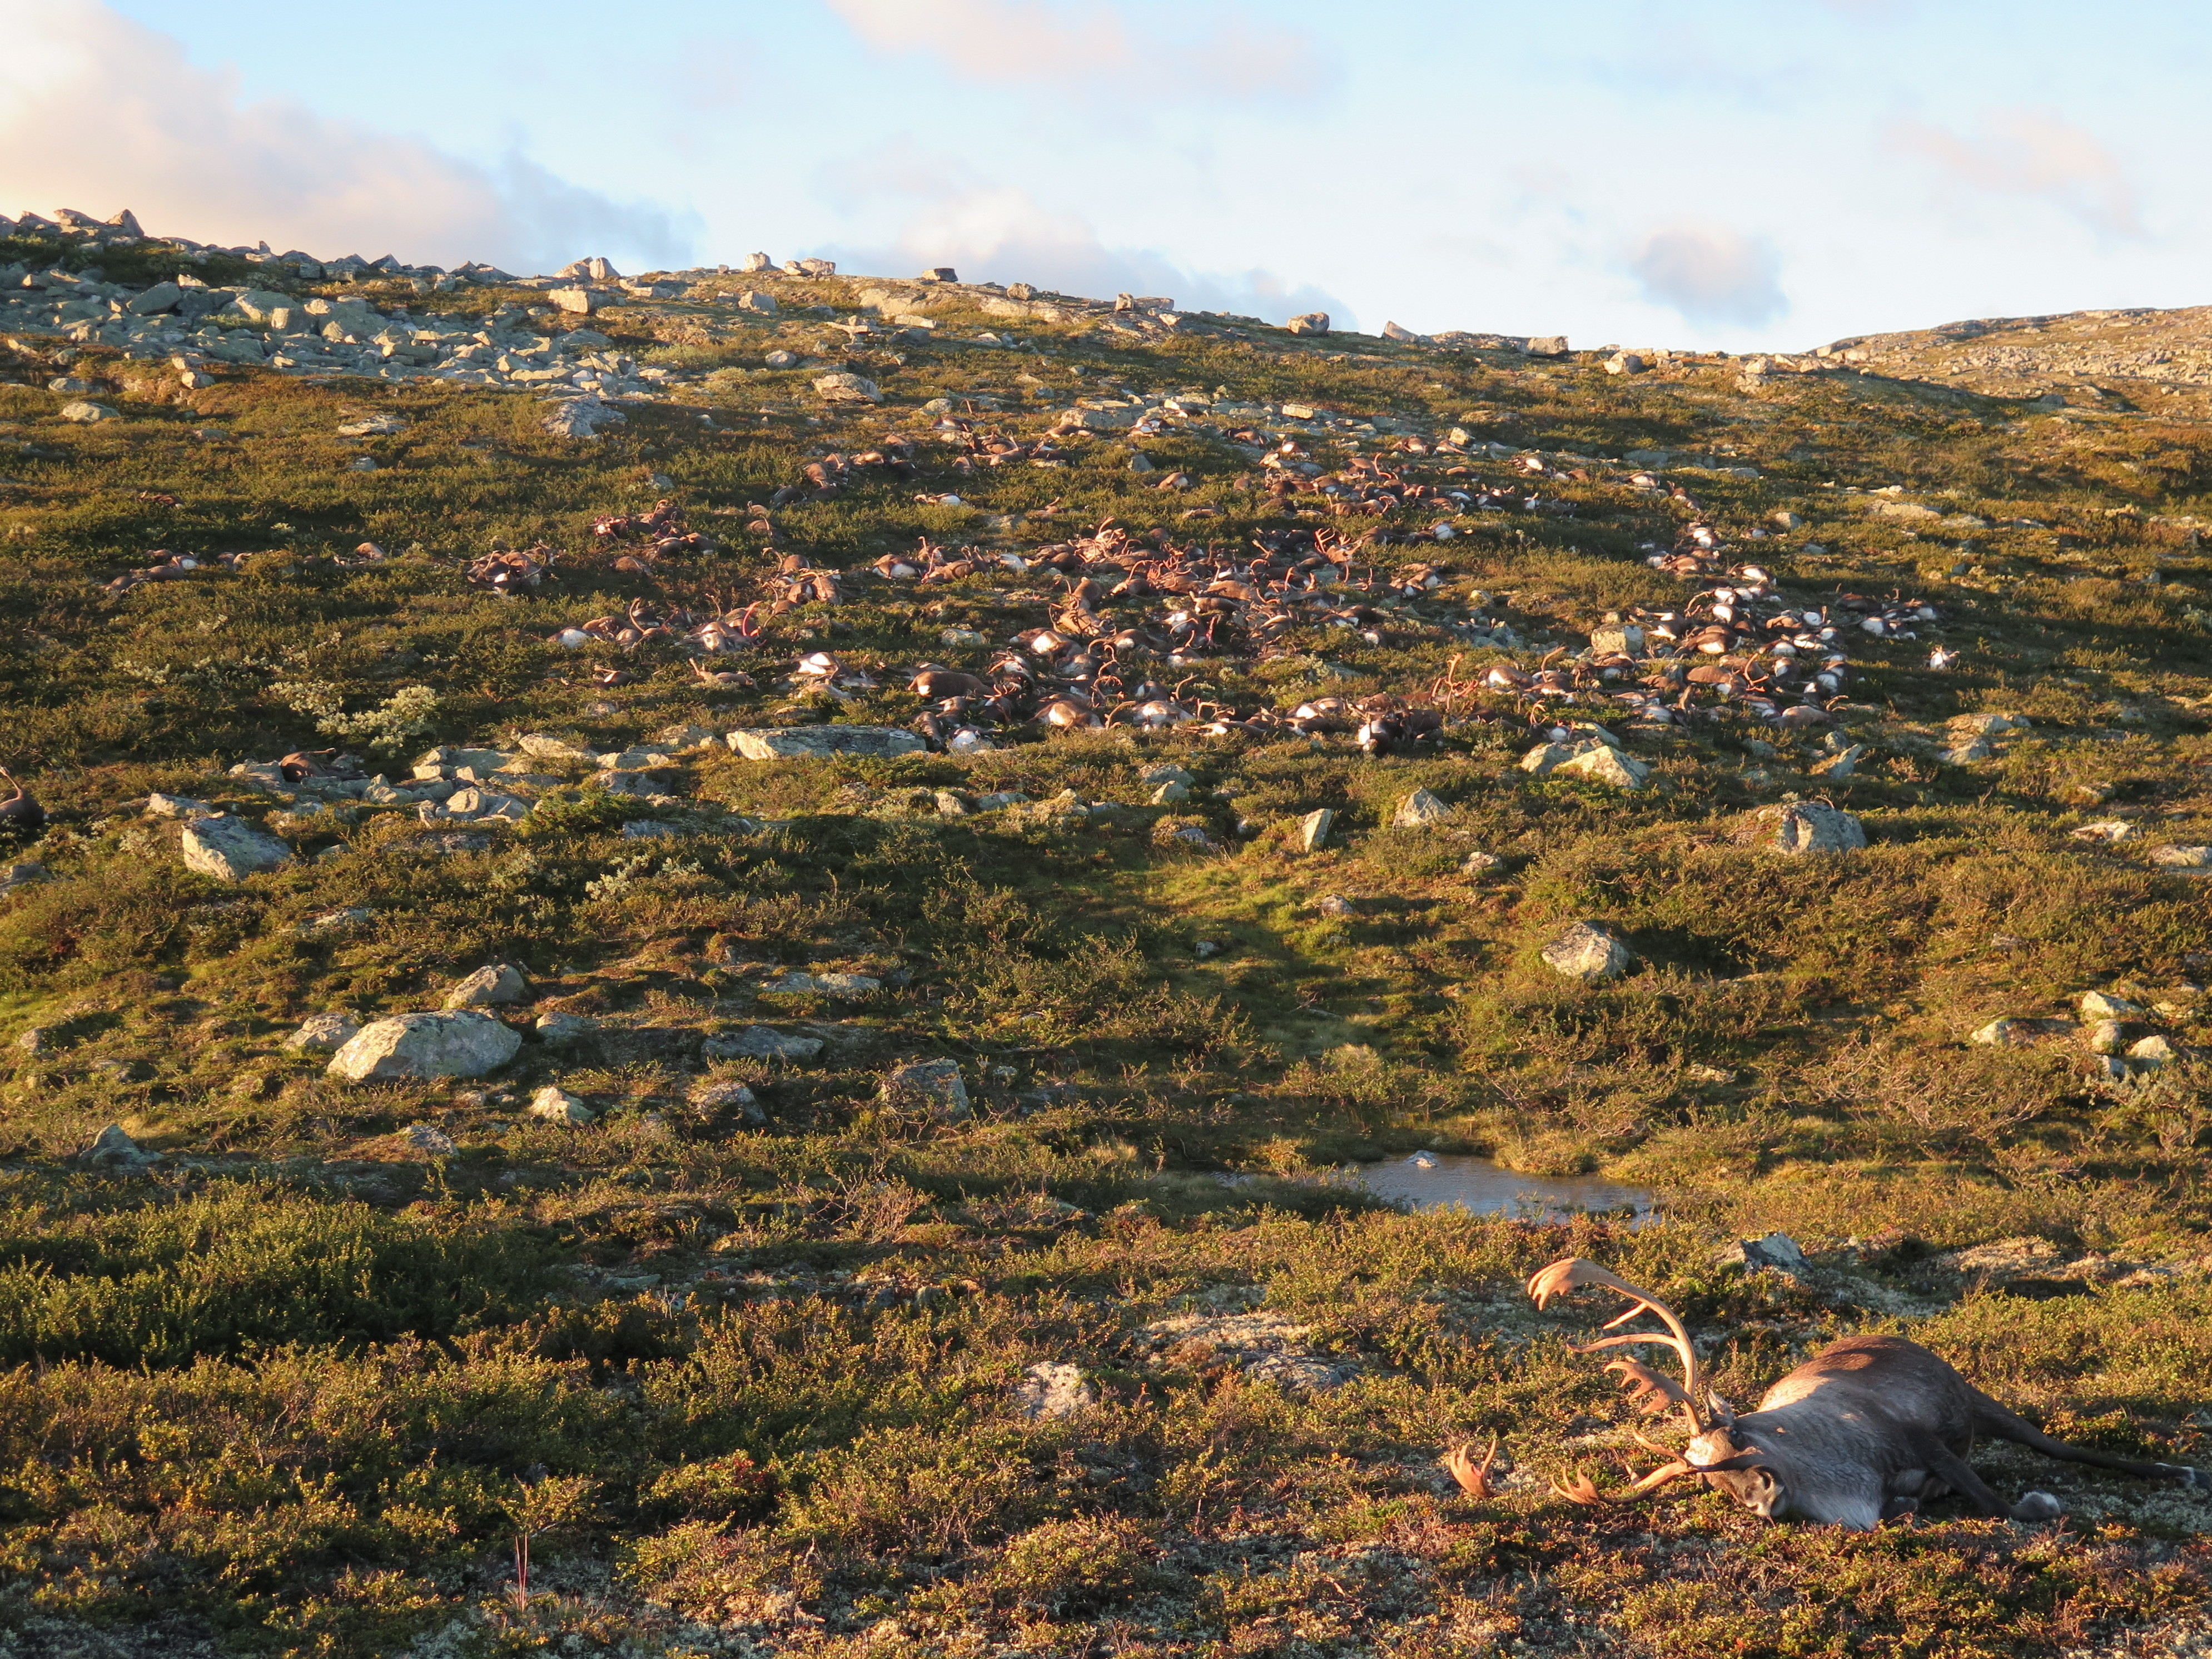 323 Reindeer Killed In Lightning Storm In Norway